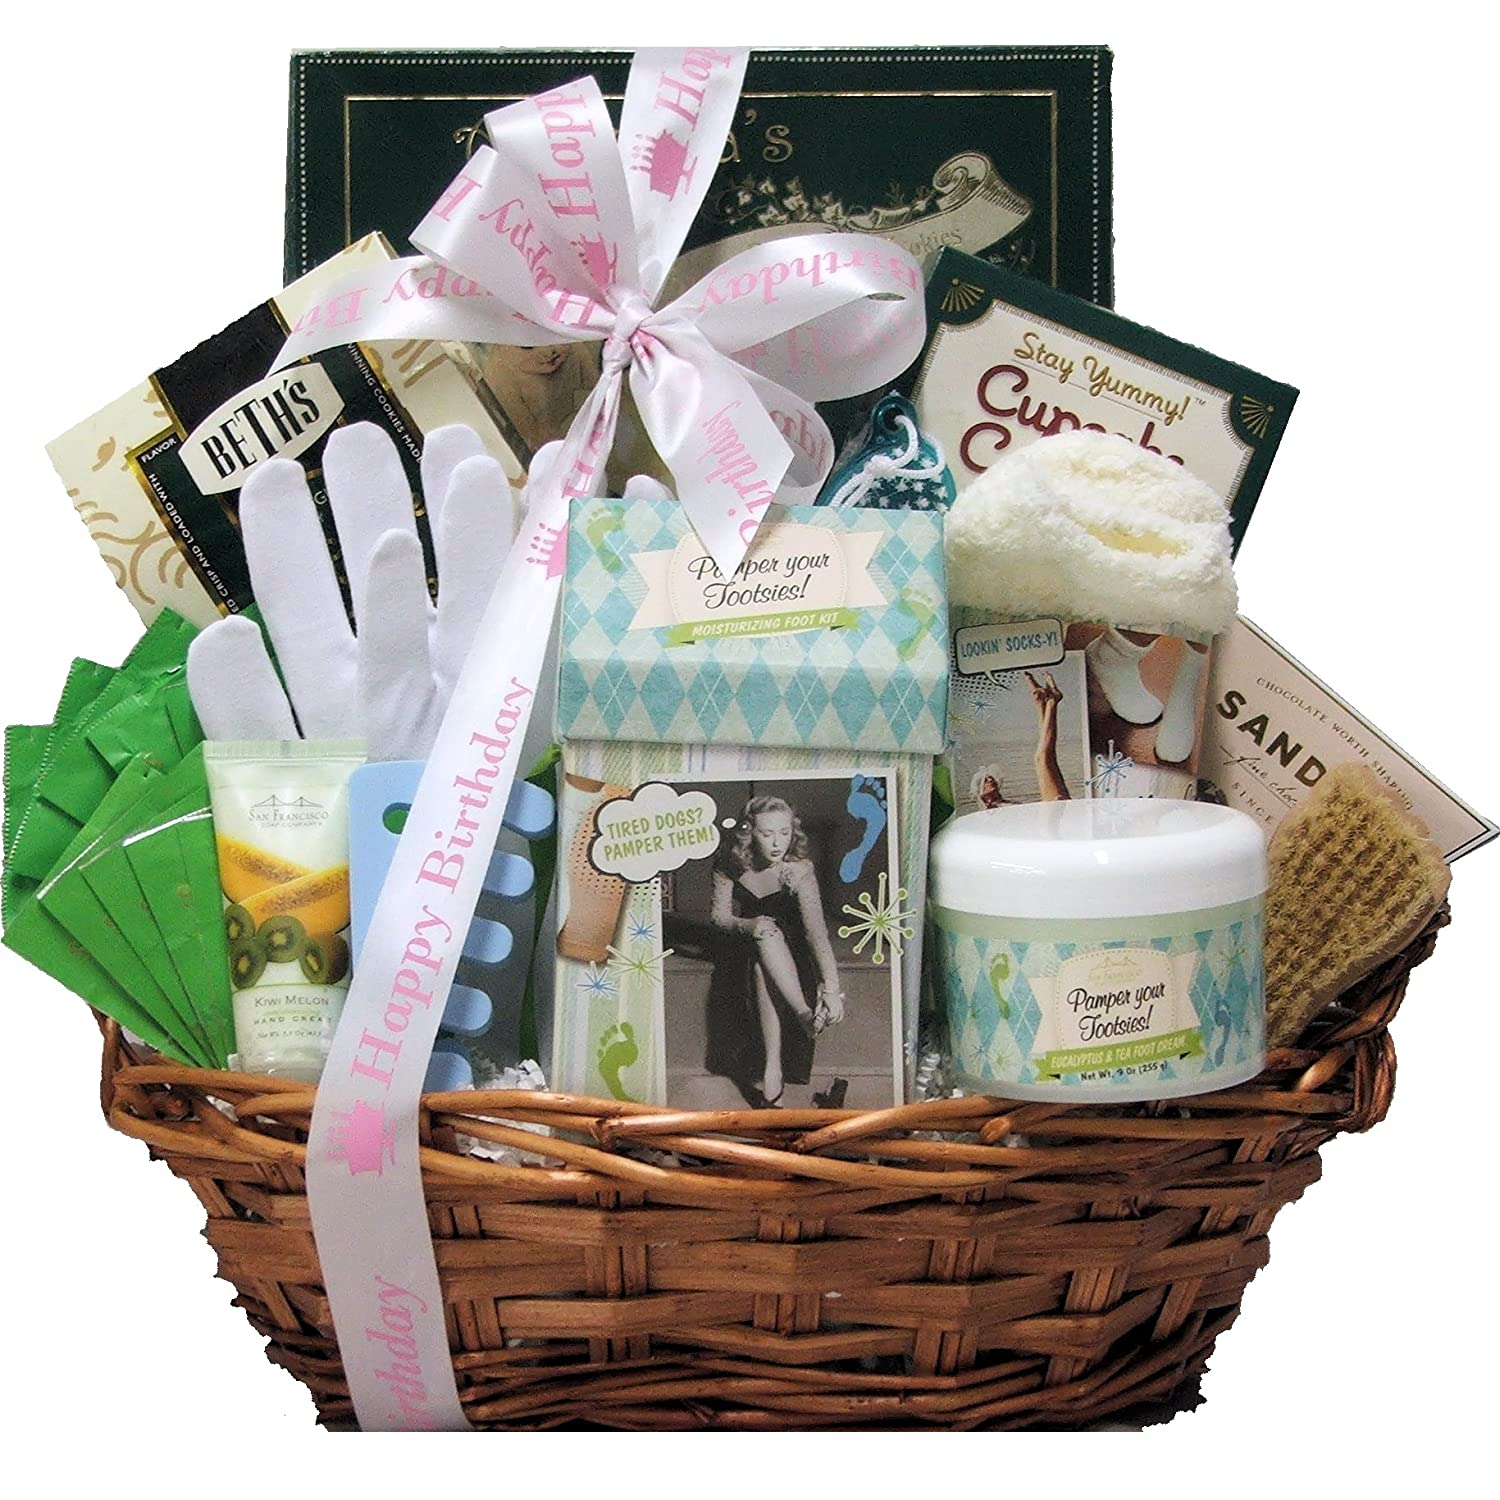 GreatArrivals Gift Baskets Hands And Feet Specialty Spa Birthday Bath Body Basket Amazon Grocery Gourmet Food